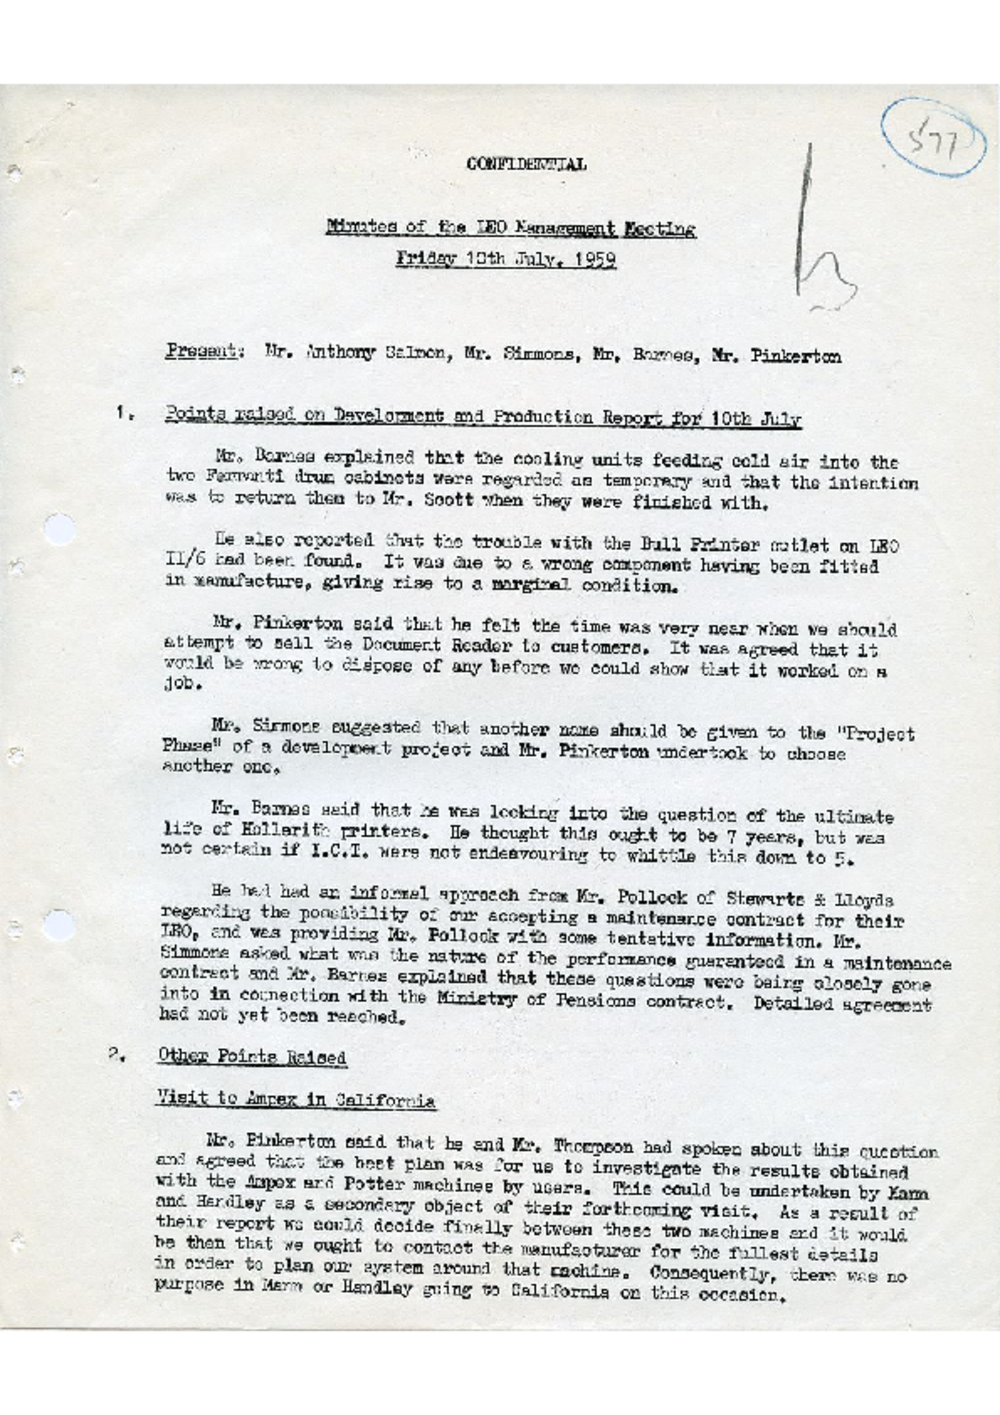 Article: 54923 LEO Management Meeting, 10/7/1959